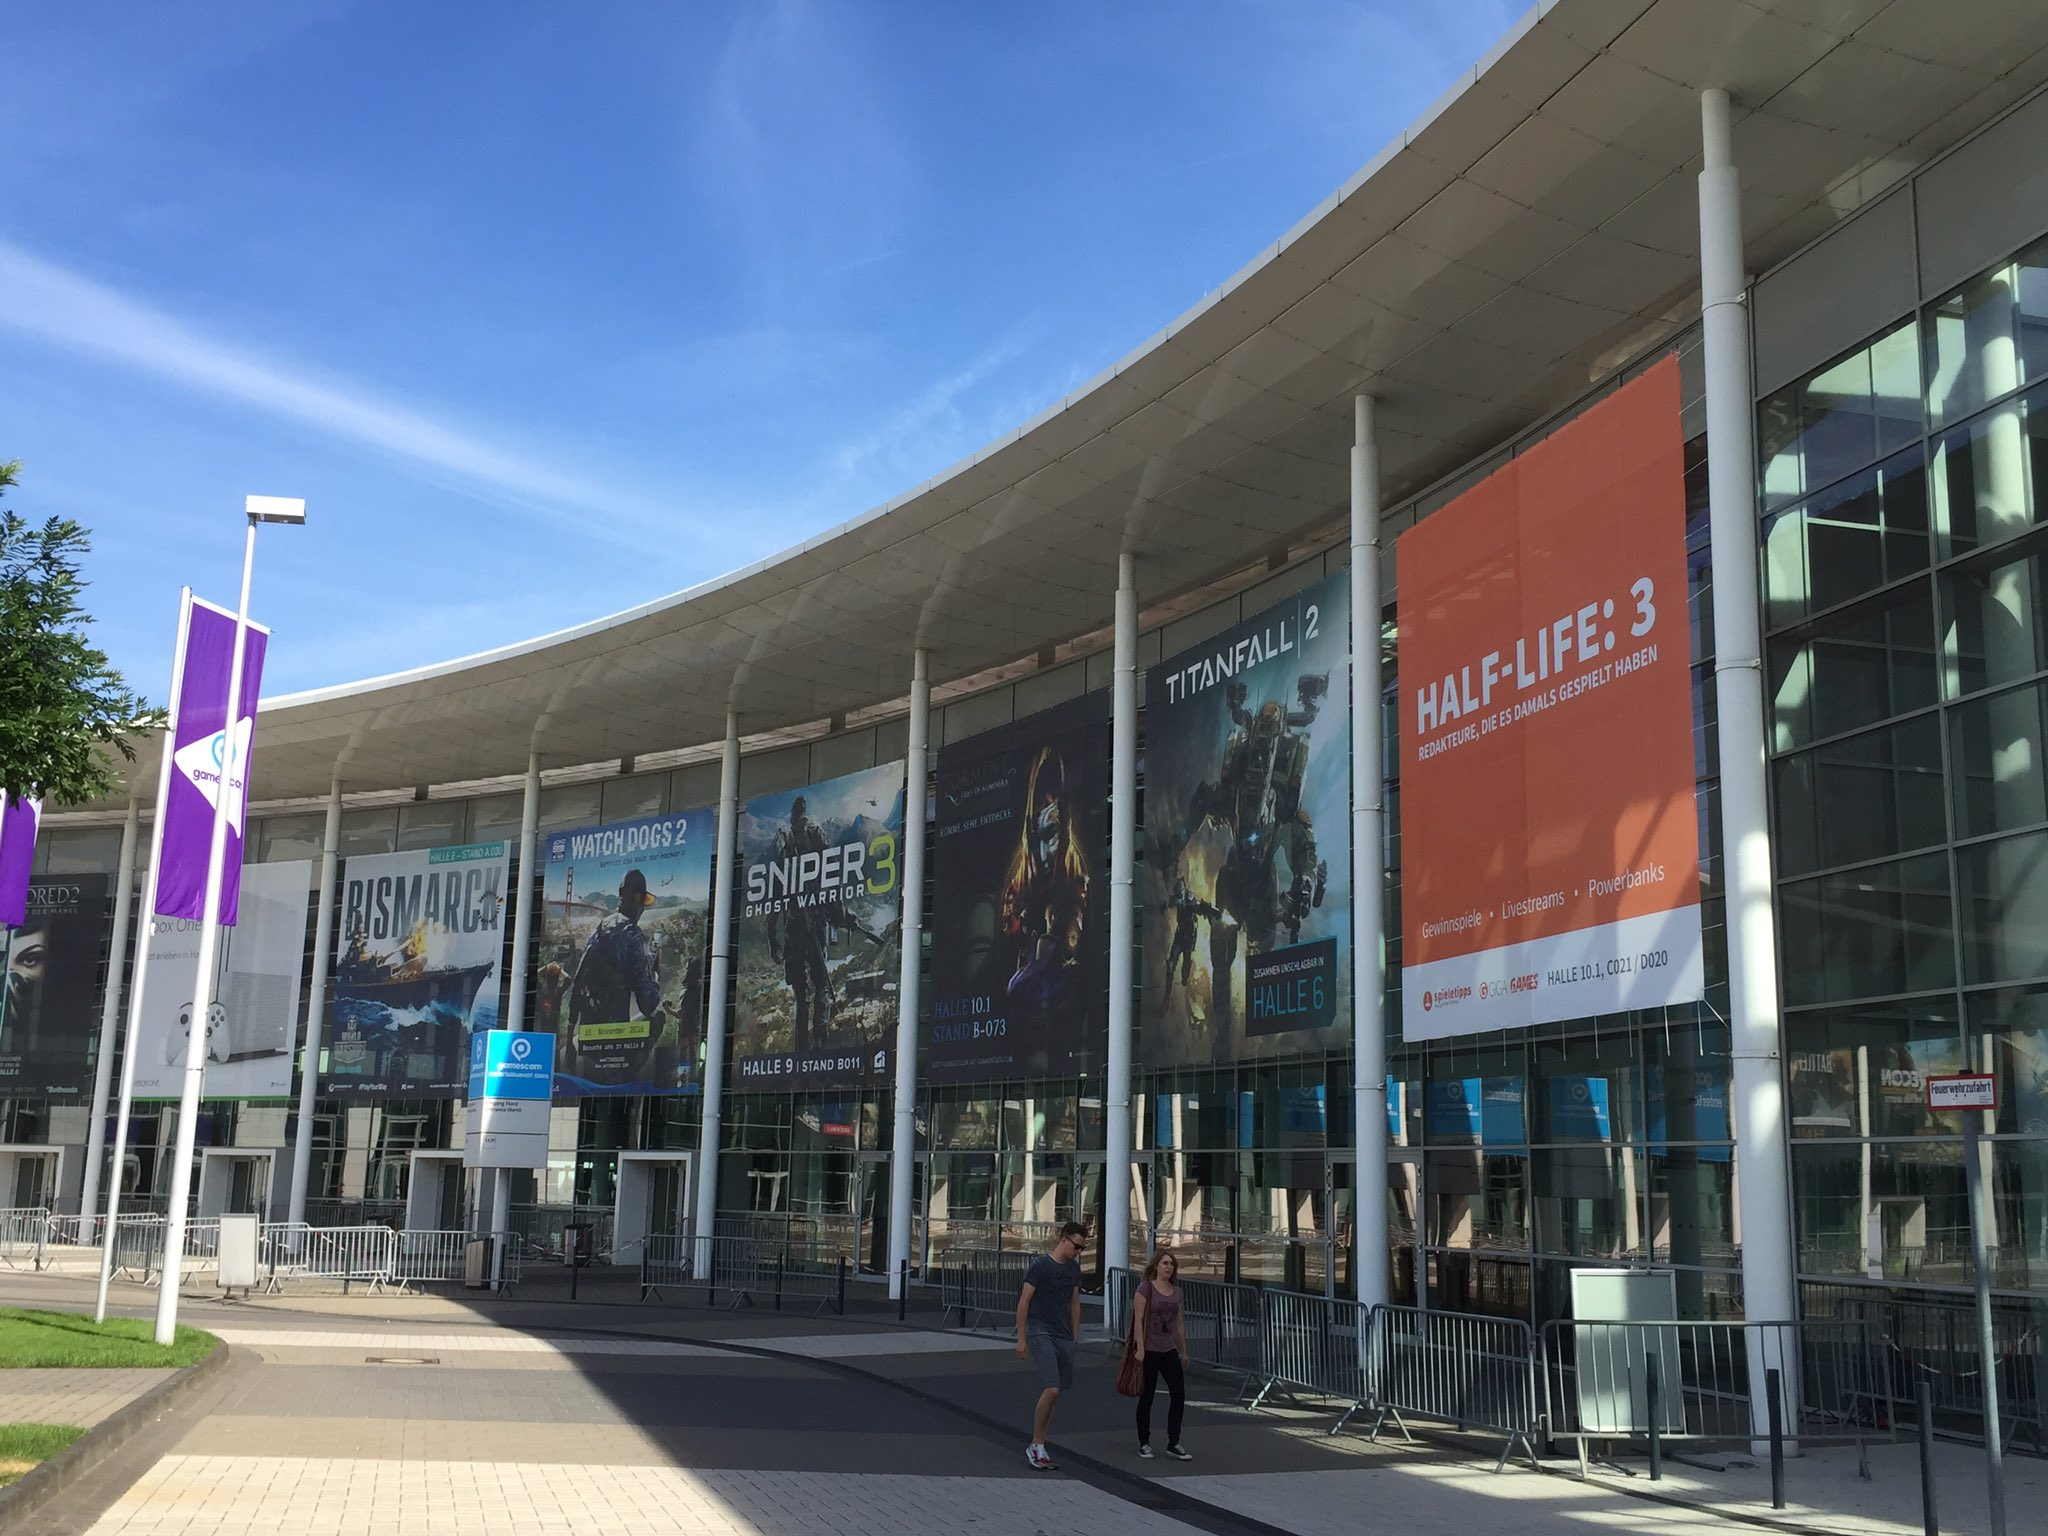 Half-Life 3 posters appear at Gamescom